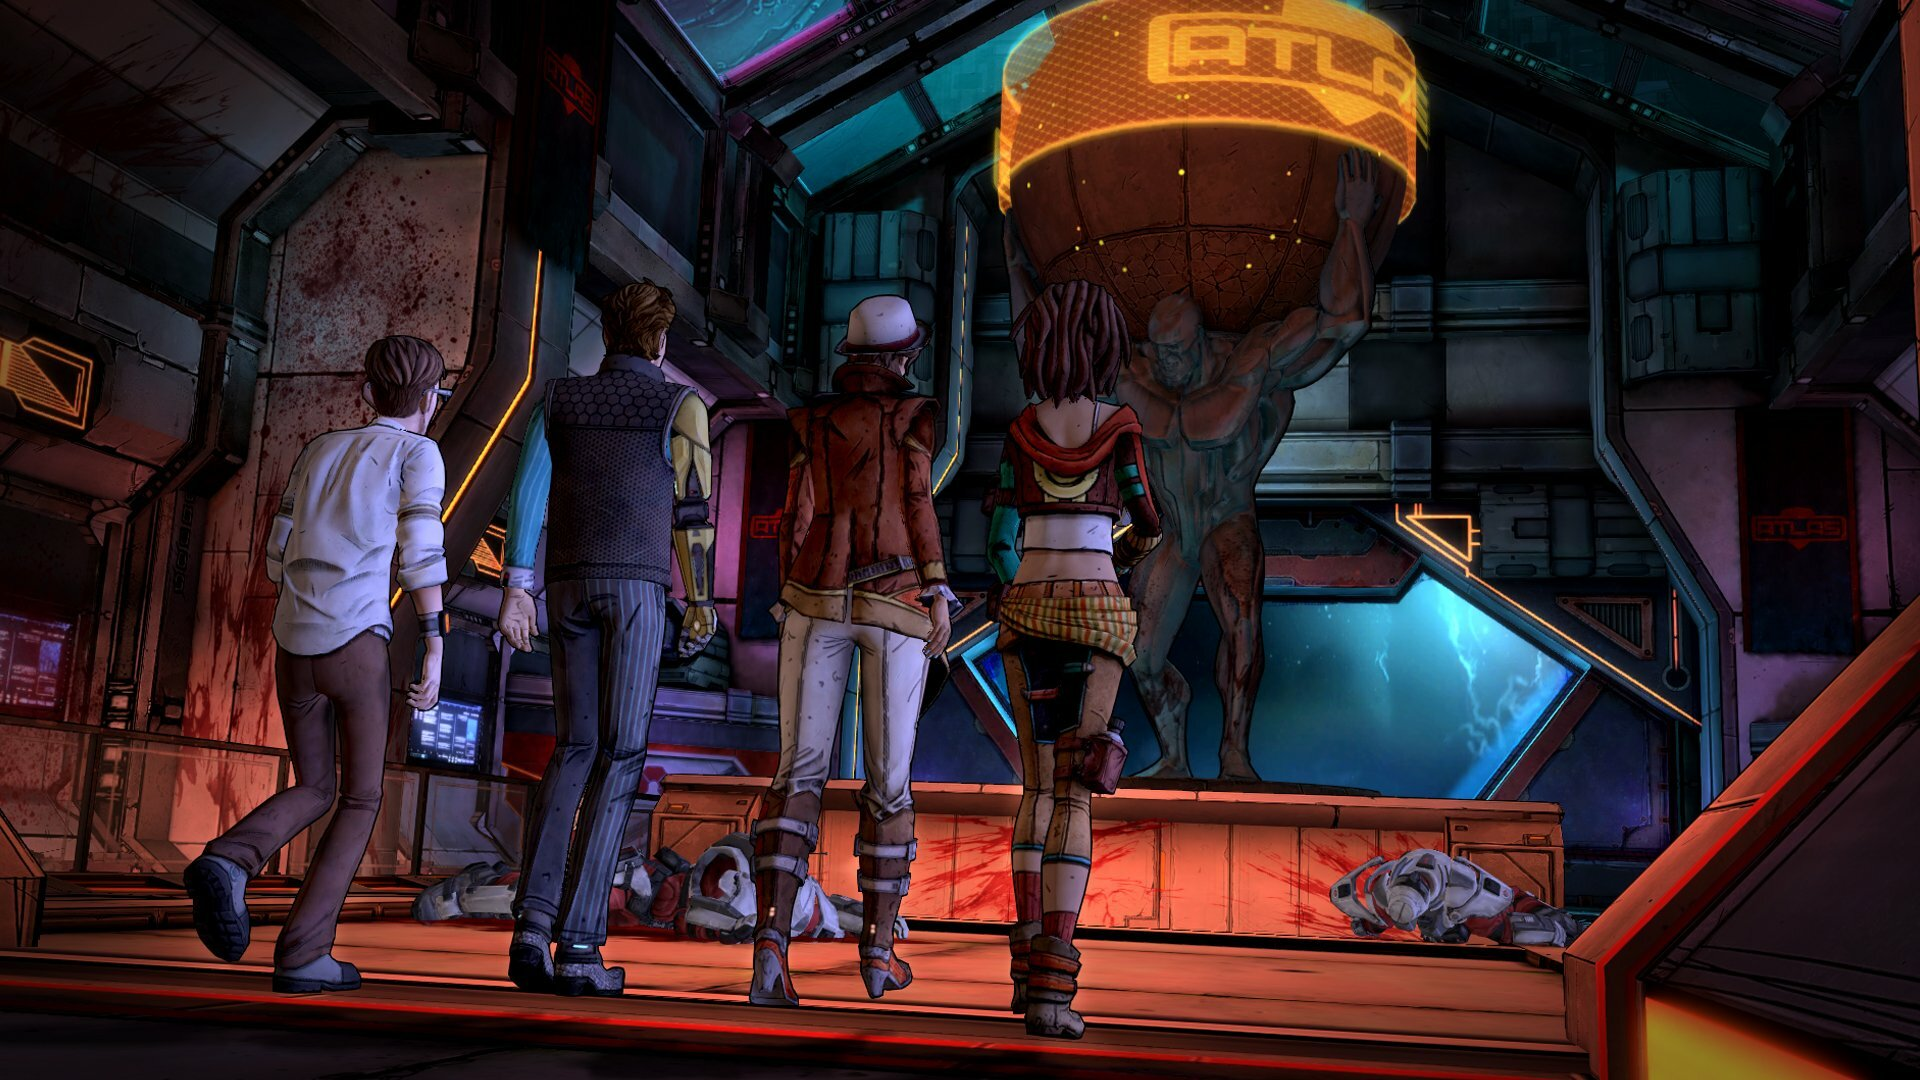 tales-from-the-borderlands-pc-screenshot-02